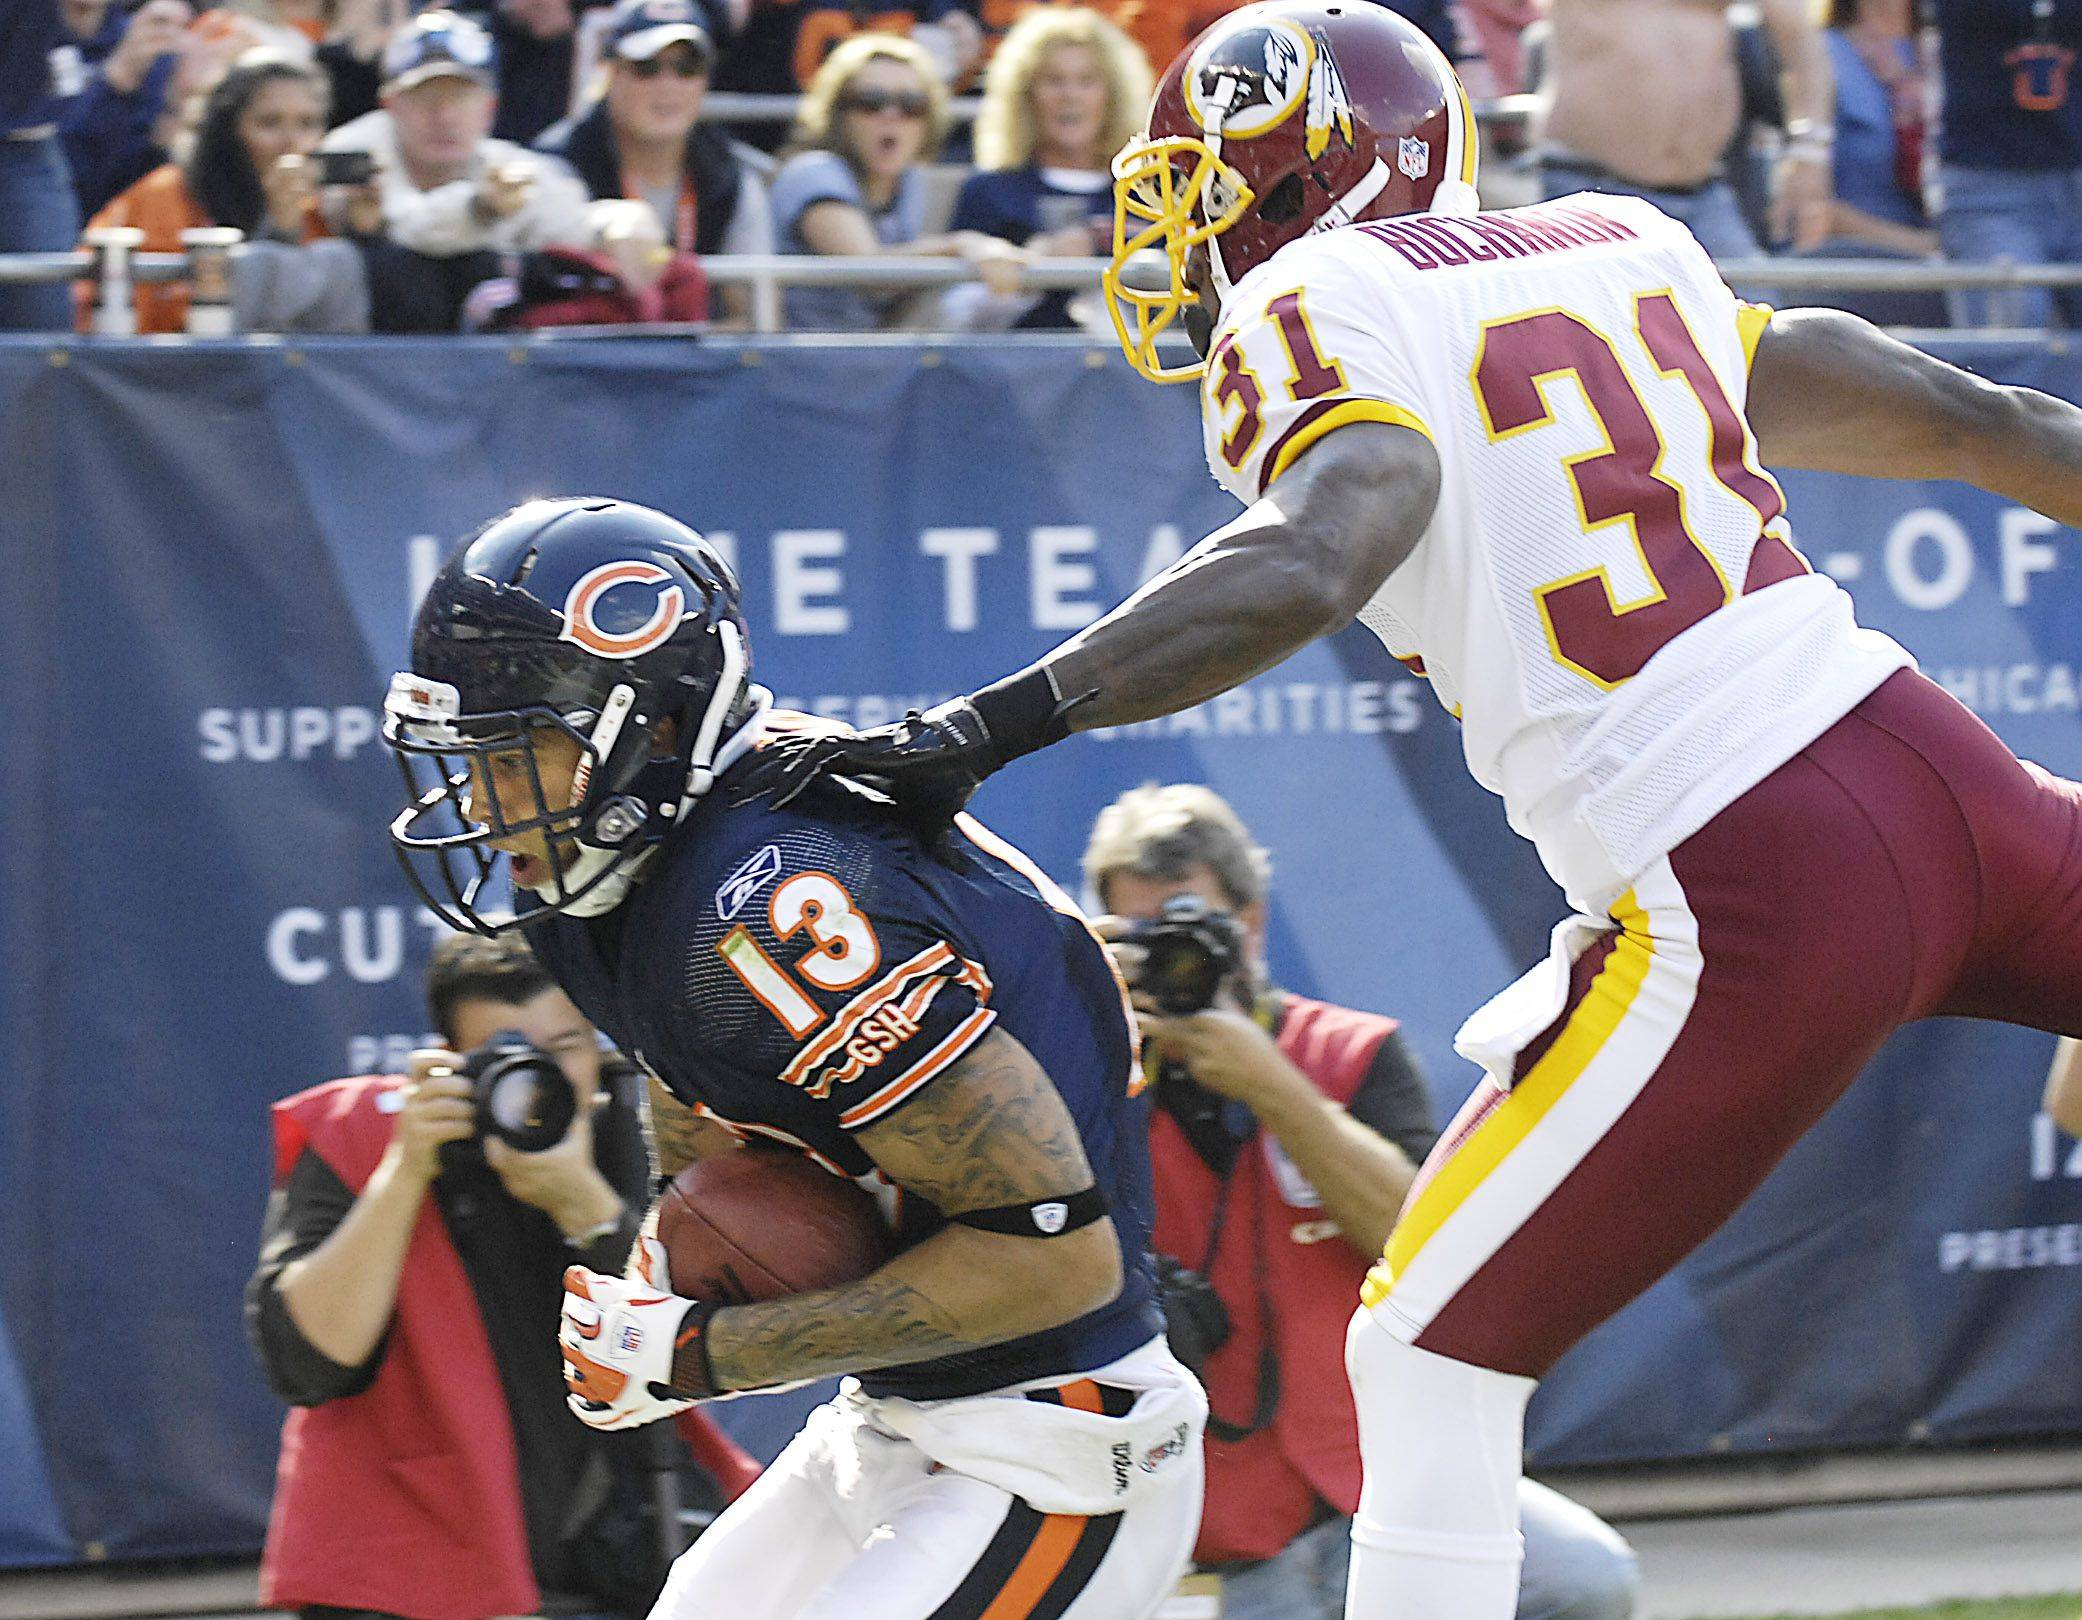 Chicago Bears wide receiver Johnny Knox catches a touchdown pass from Jay Cutler as Washington Redskins cornerback Phillip Buchanon defends.